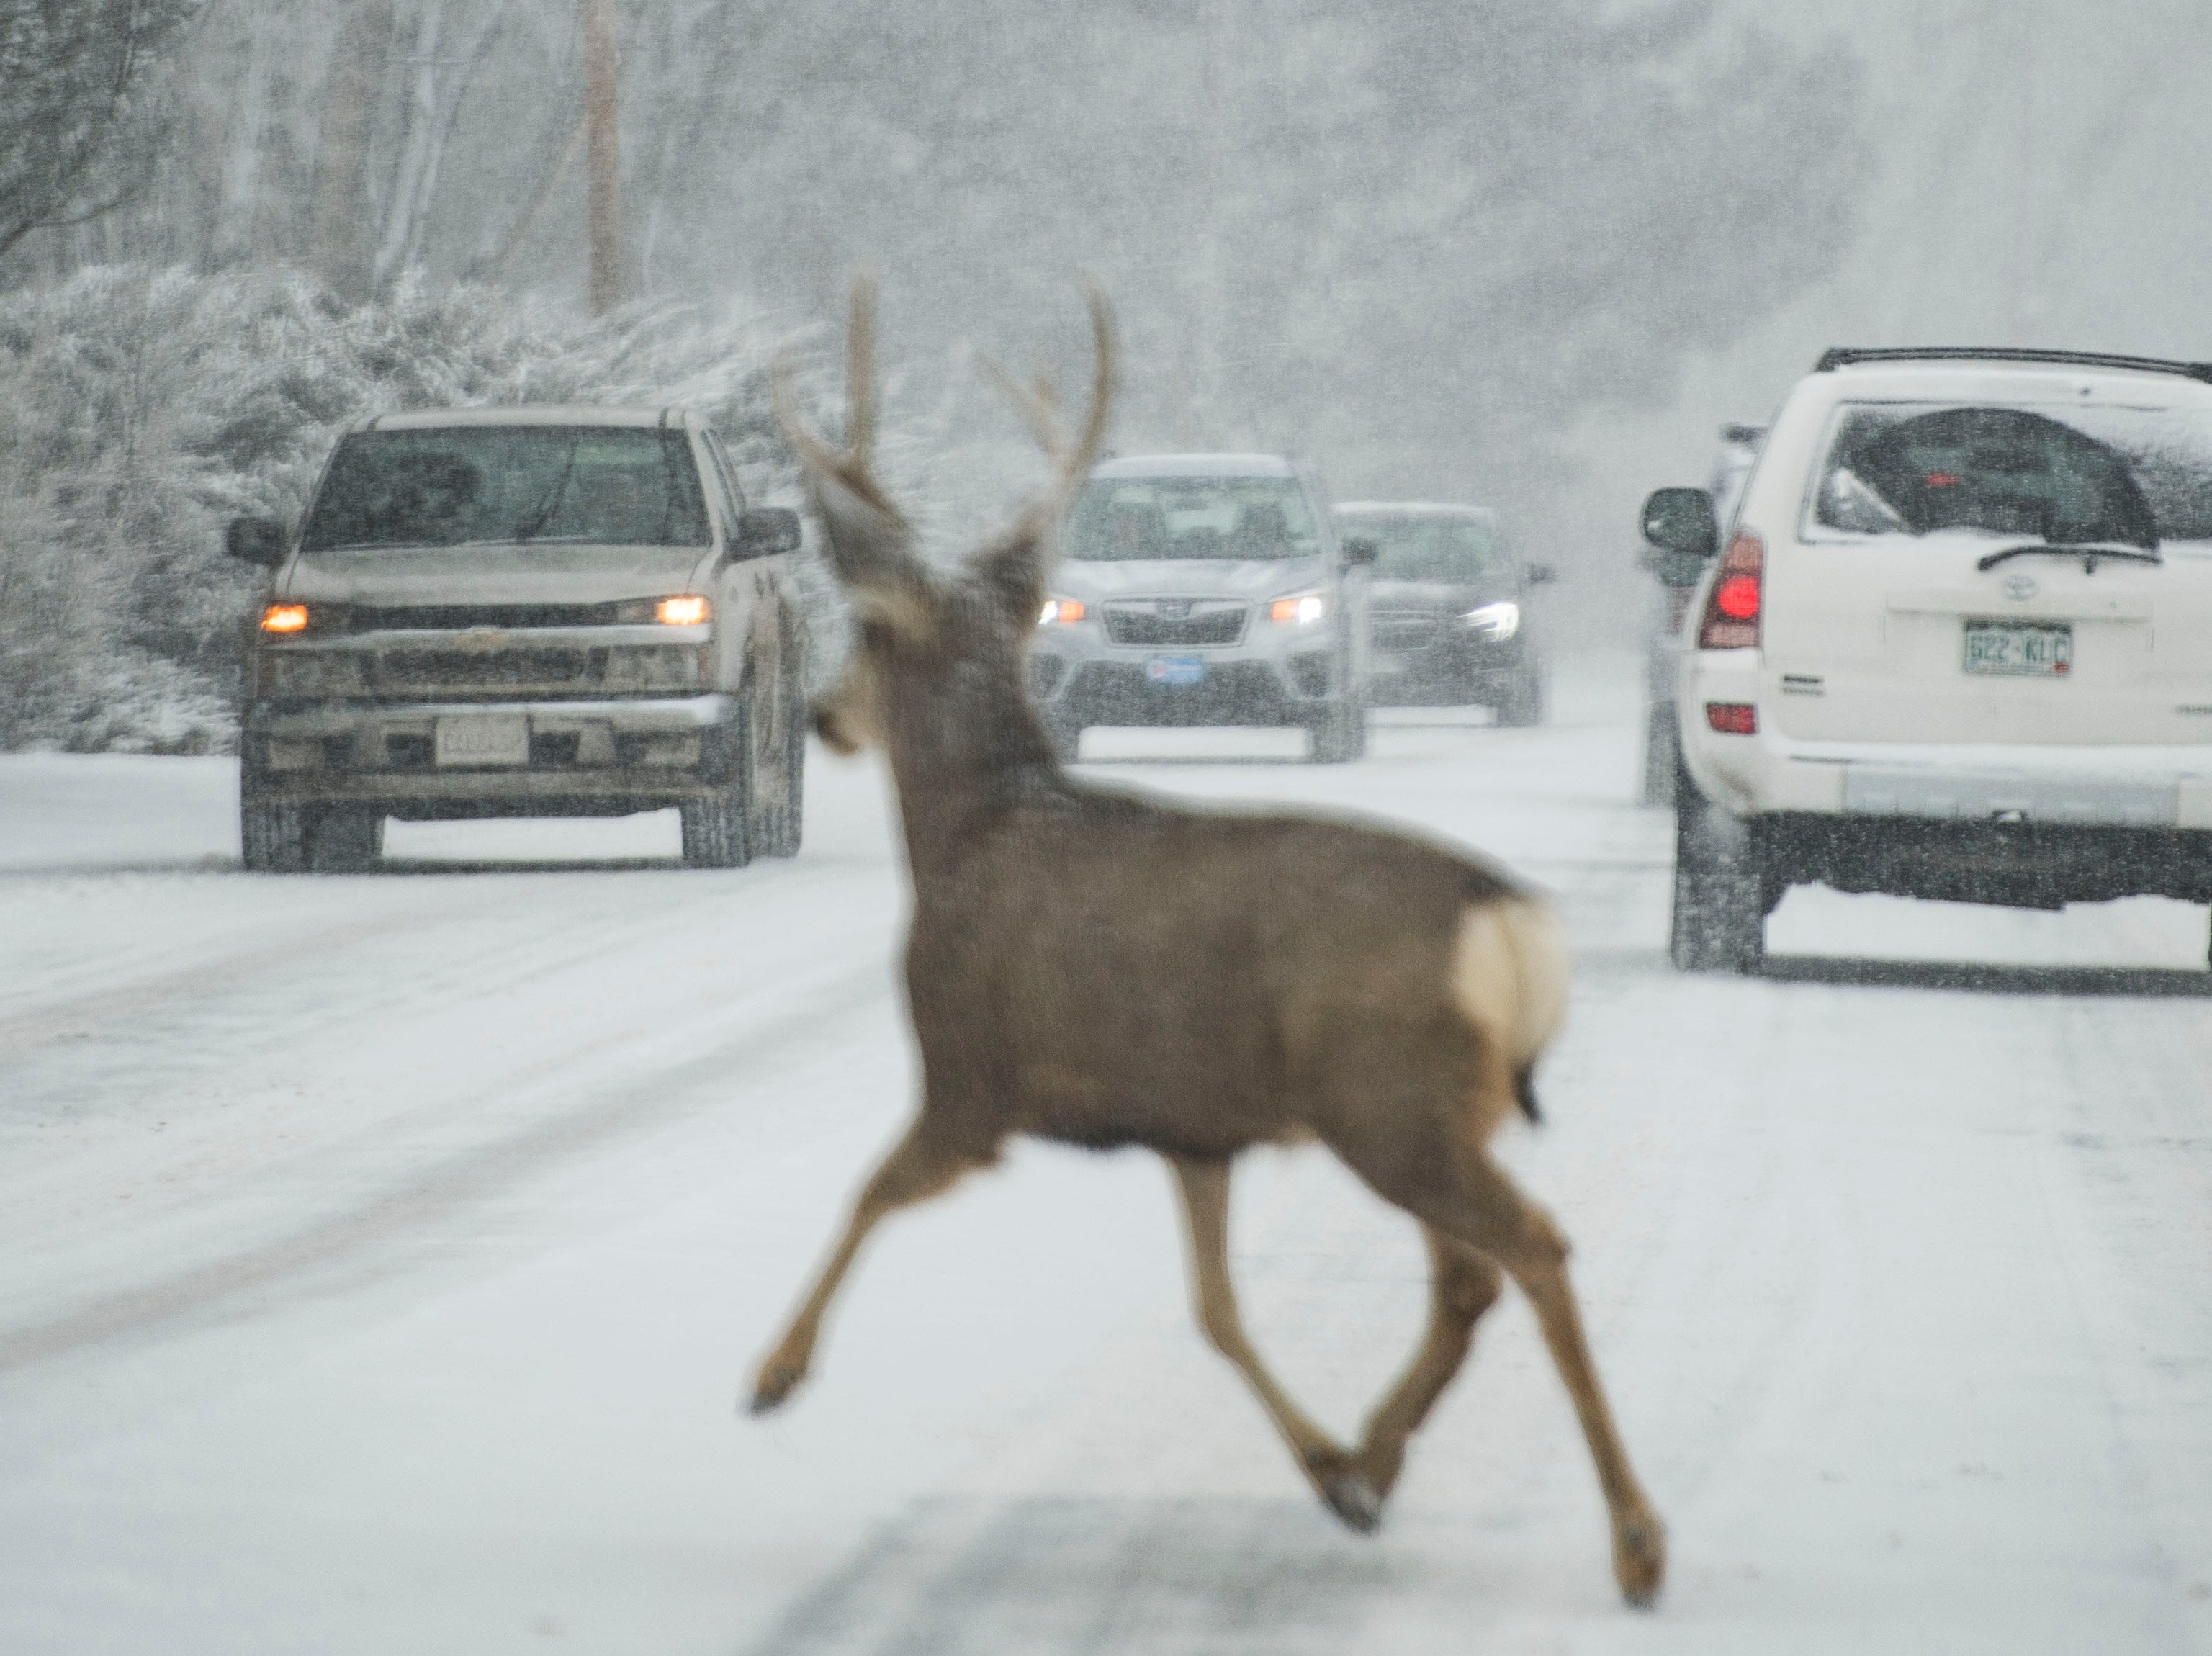 A mule deer buck crosses the street in front of traffic during a snowstorm on Wednesday, Feb. 6, 2019, near Terry Lake in Fort Collins, Colo.